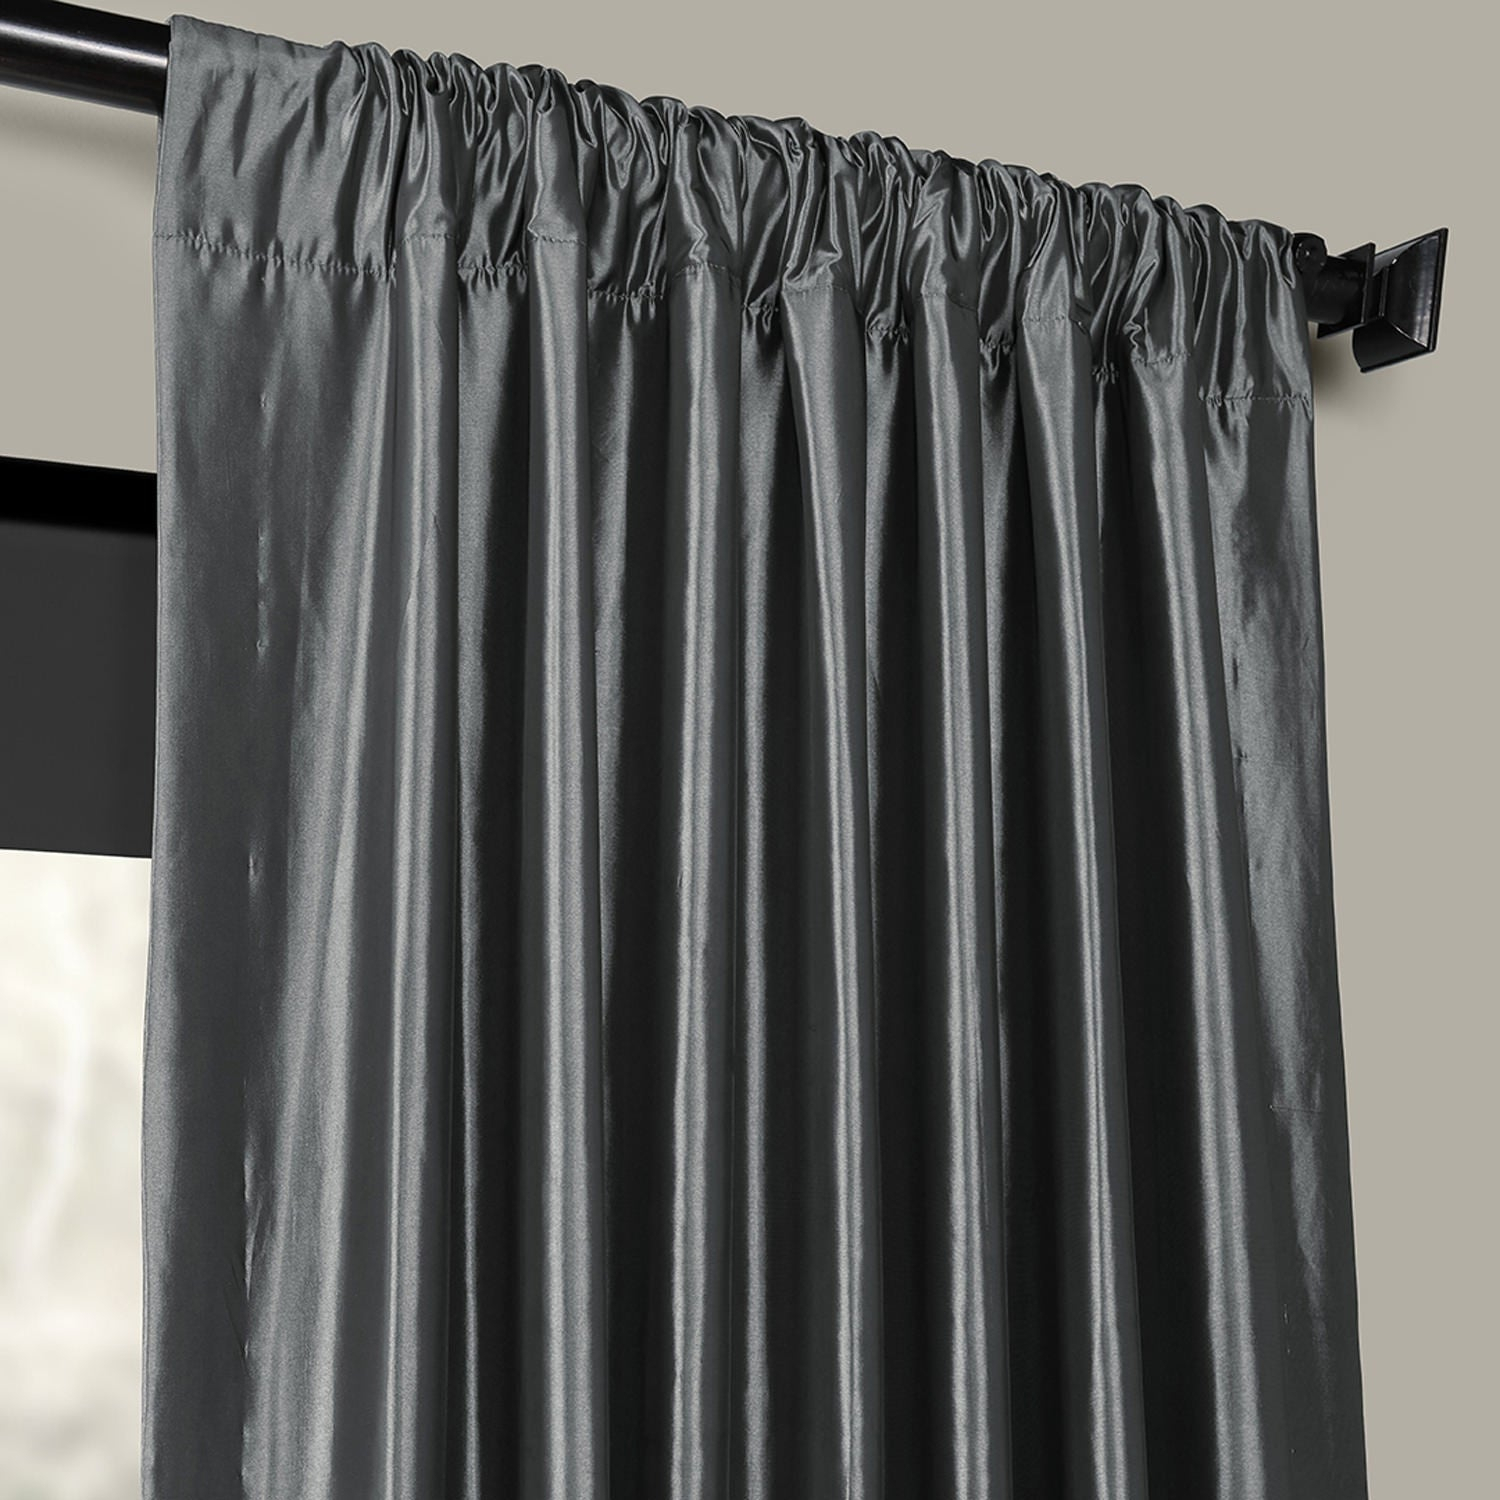 Exclusive Fabrics Solid Faux Silk Taffeta Graphite Single Curtain Panel Intended For Solid Faux Silk Taffeta Graphite Single Curtain Panels (View 9 of 30)